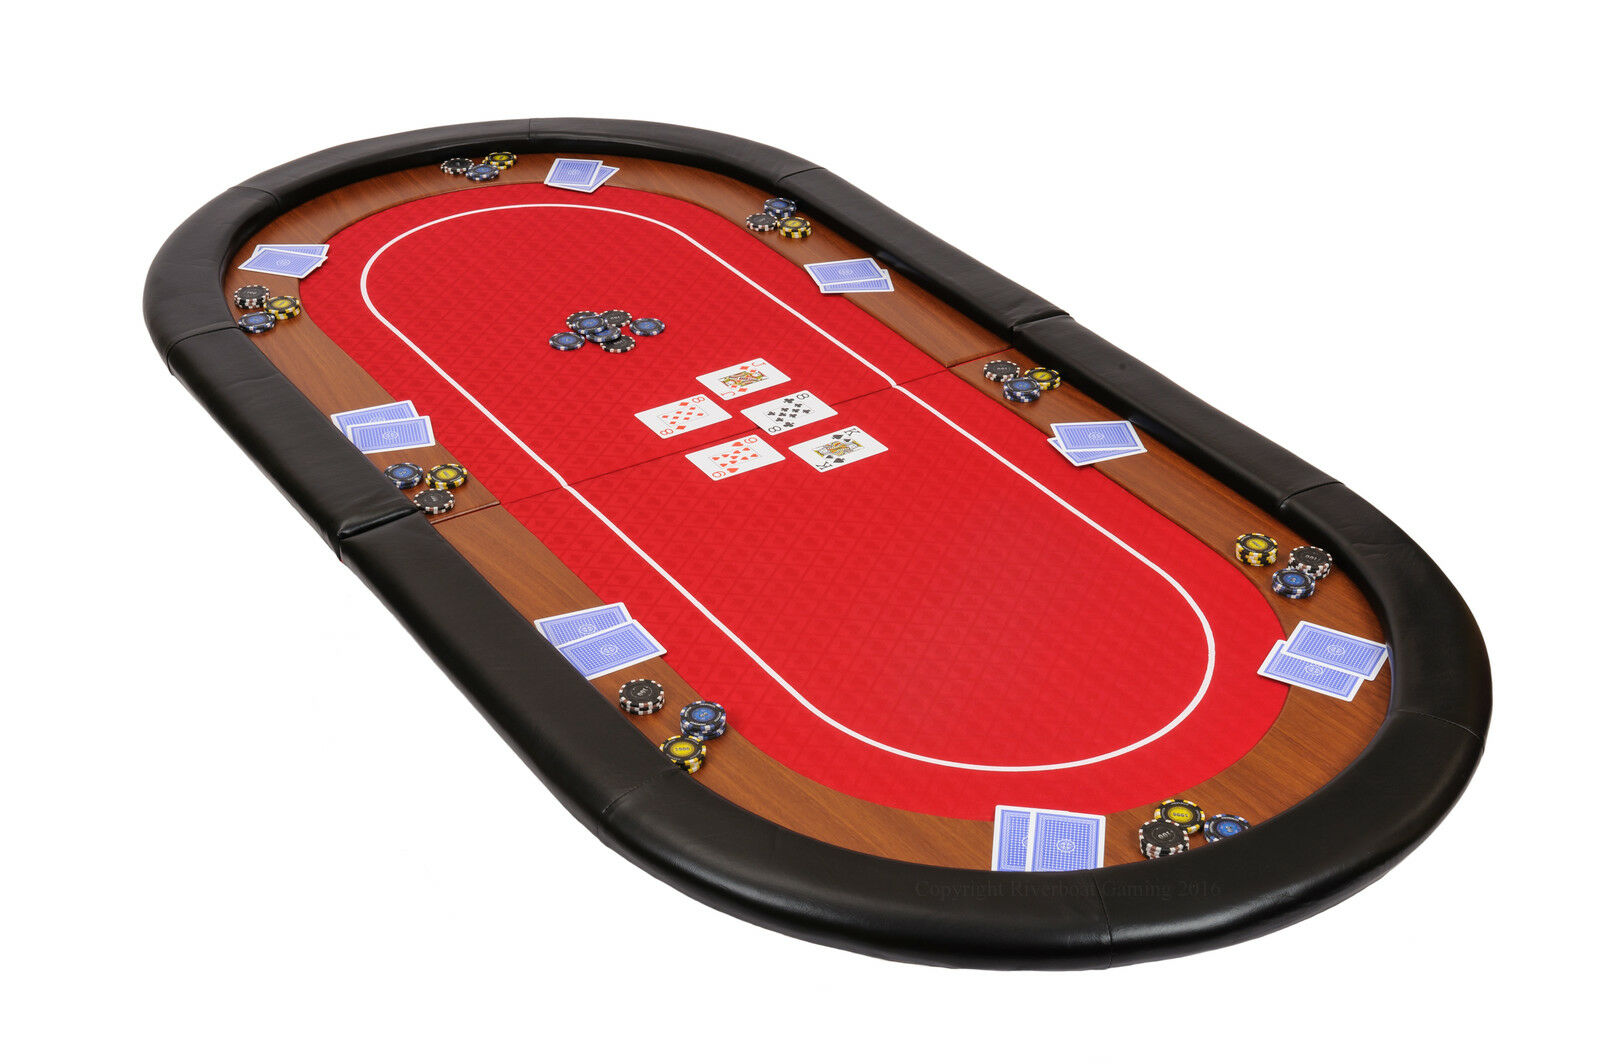 Champion Folding Poker Table Top in Red Speed Cloth 180cm with Leather Armrest